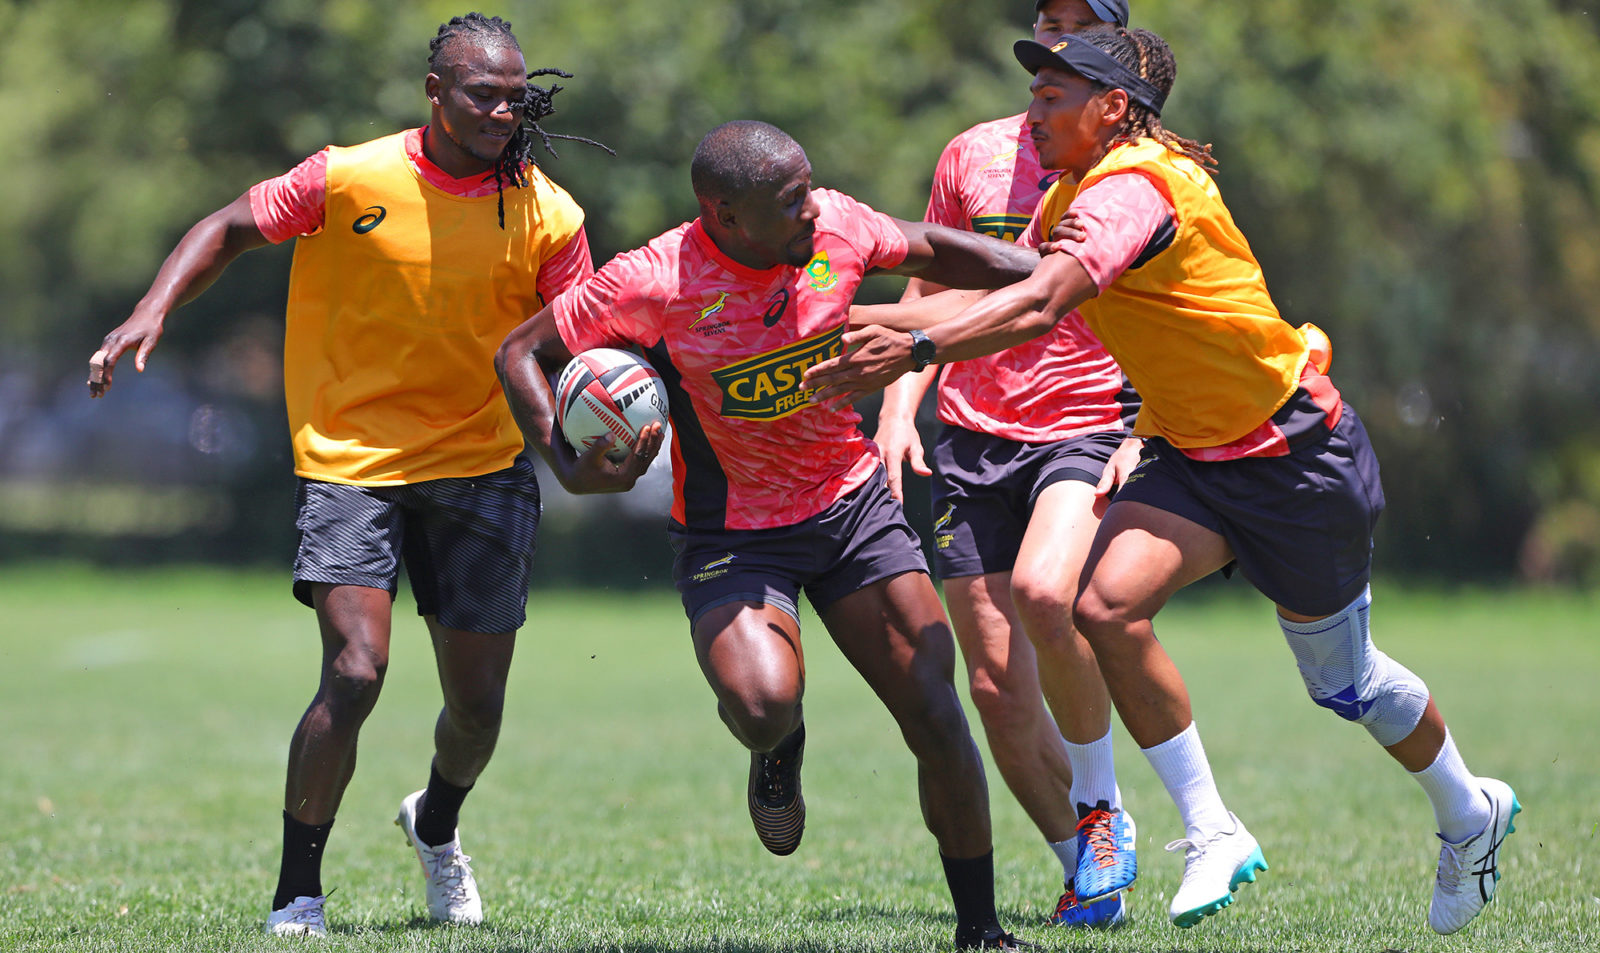 Gold Cup Rugby 2020.Blitzboks Ready For Dubai But All Eyes On Tokyo 2020